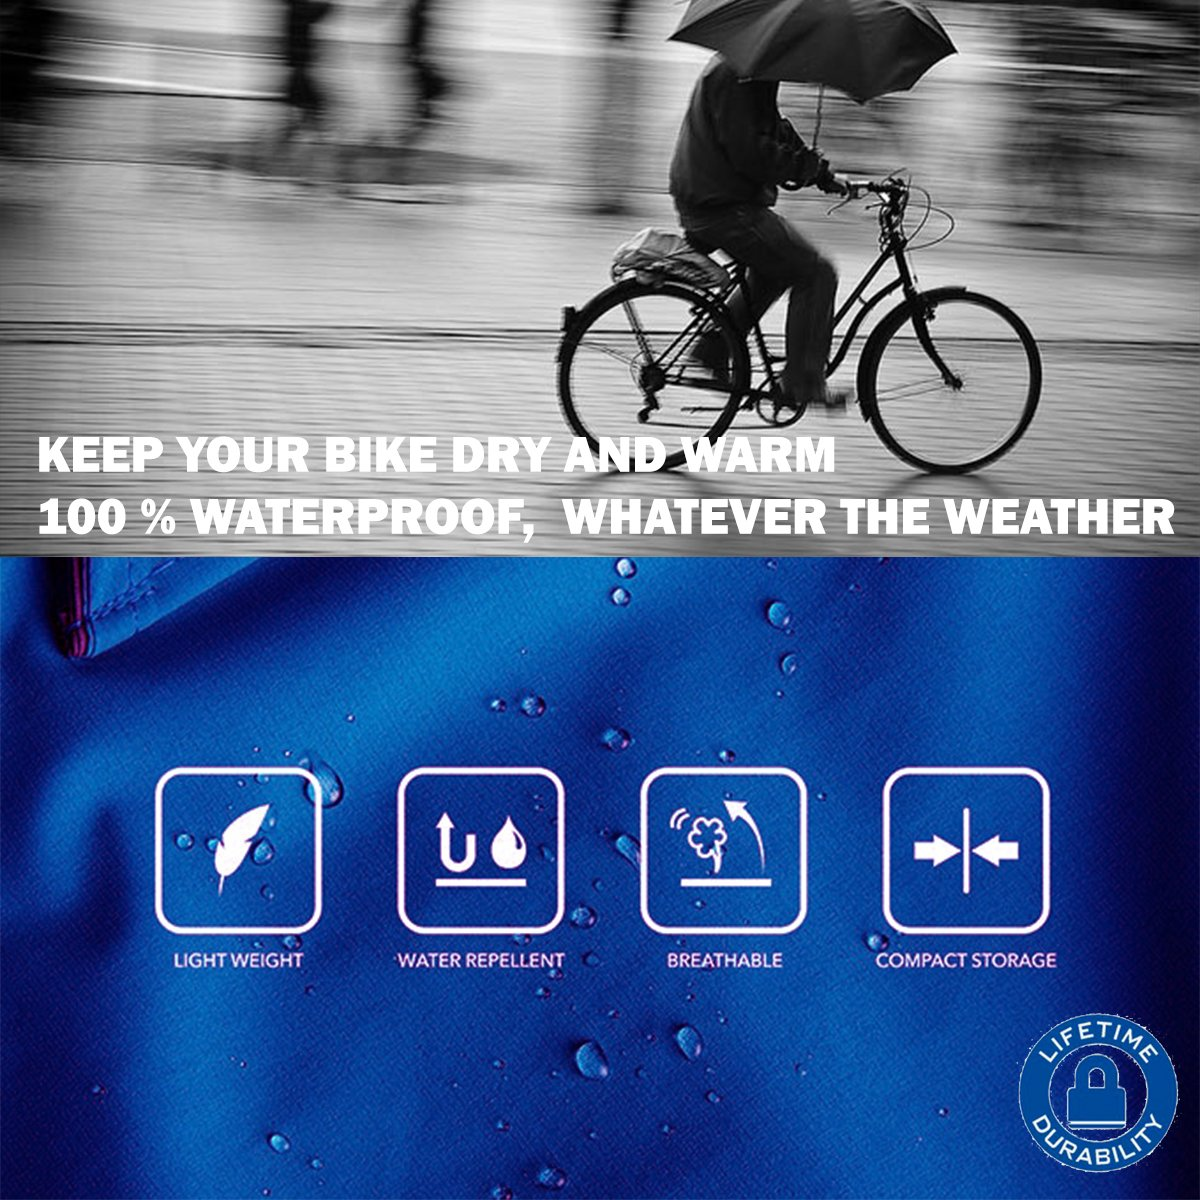 Widras Bicycle and Motorcycle Cover for Outdoor Storage Bike Heavy Duty Rip stop Material, Waterproof & Anti-UV Protection from All Weather Conditions for Mountain & Road Bikes by Widras (Image #5)